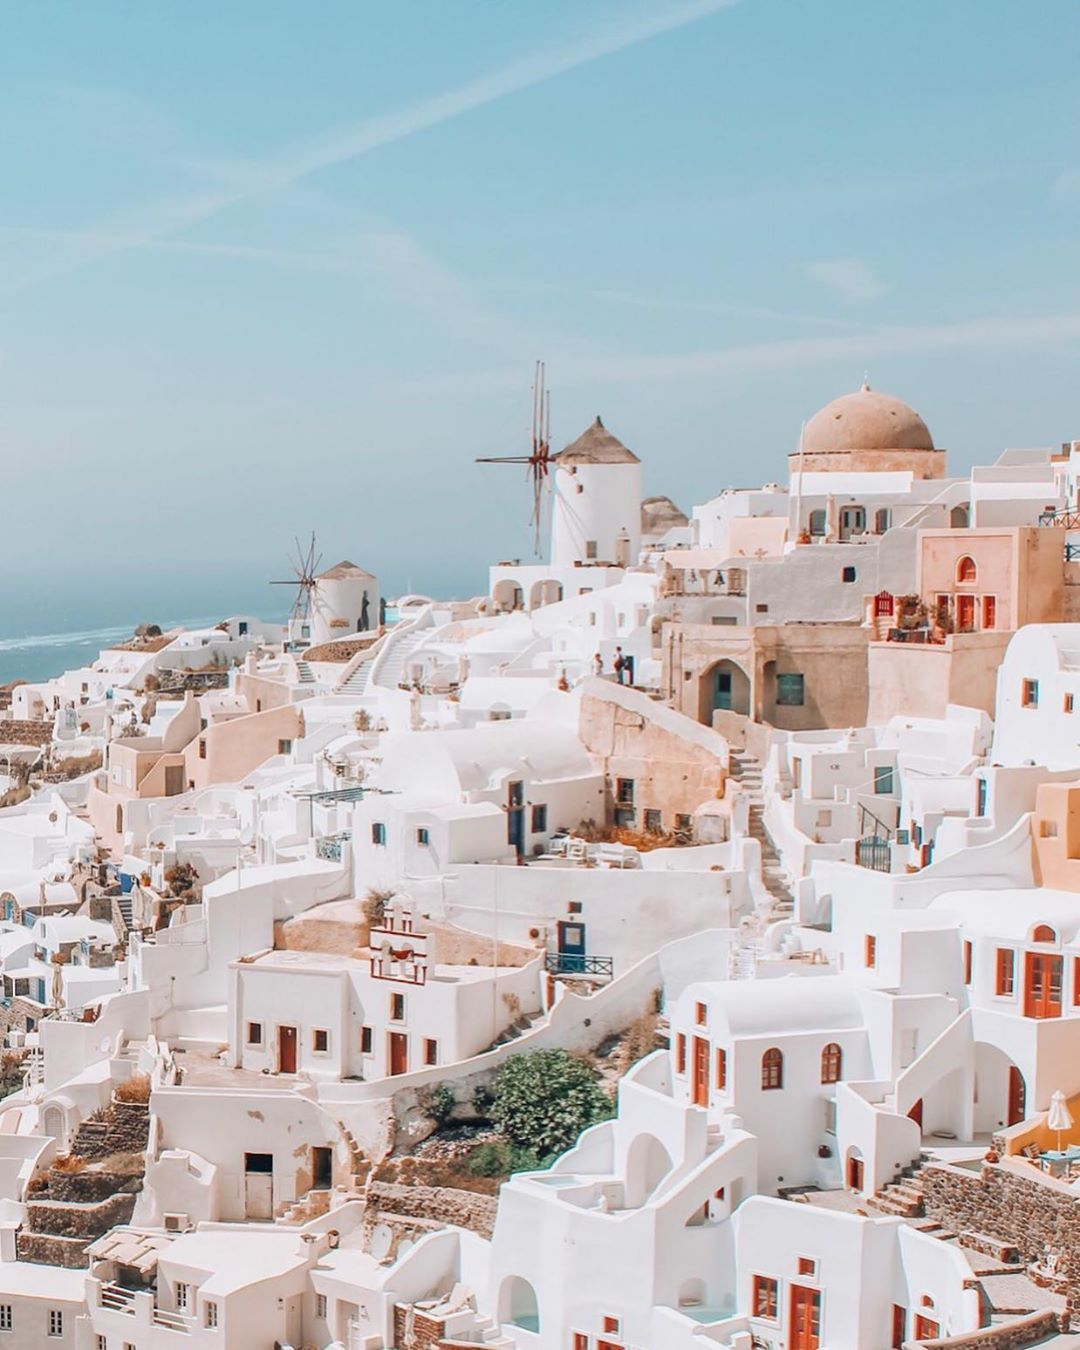 Santorini Greece Travel Historic Townn Island Travel Tourist Attraction Sightseeing Spots S Travel Aesthetic Beautiful Places To Travel Dream Vacations